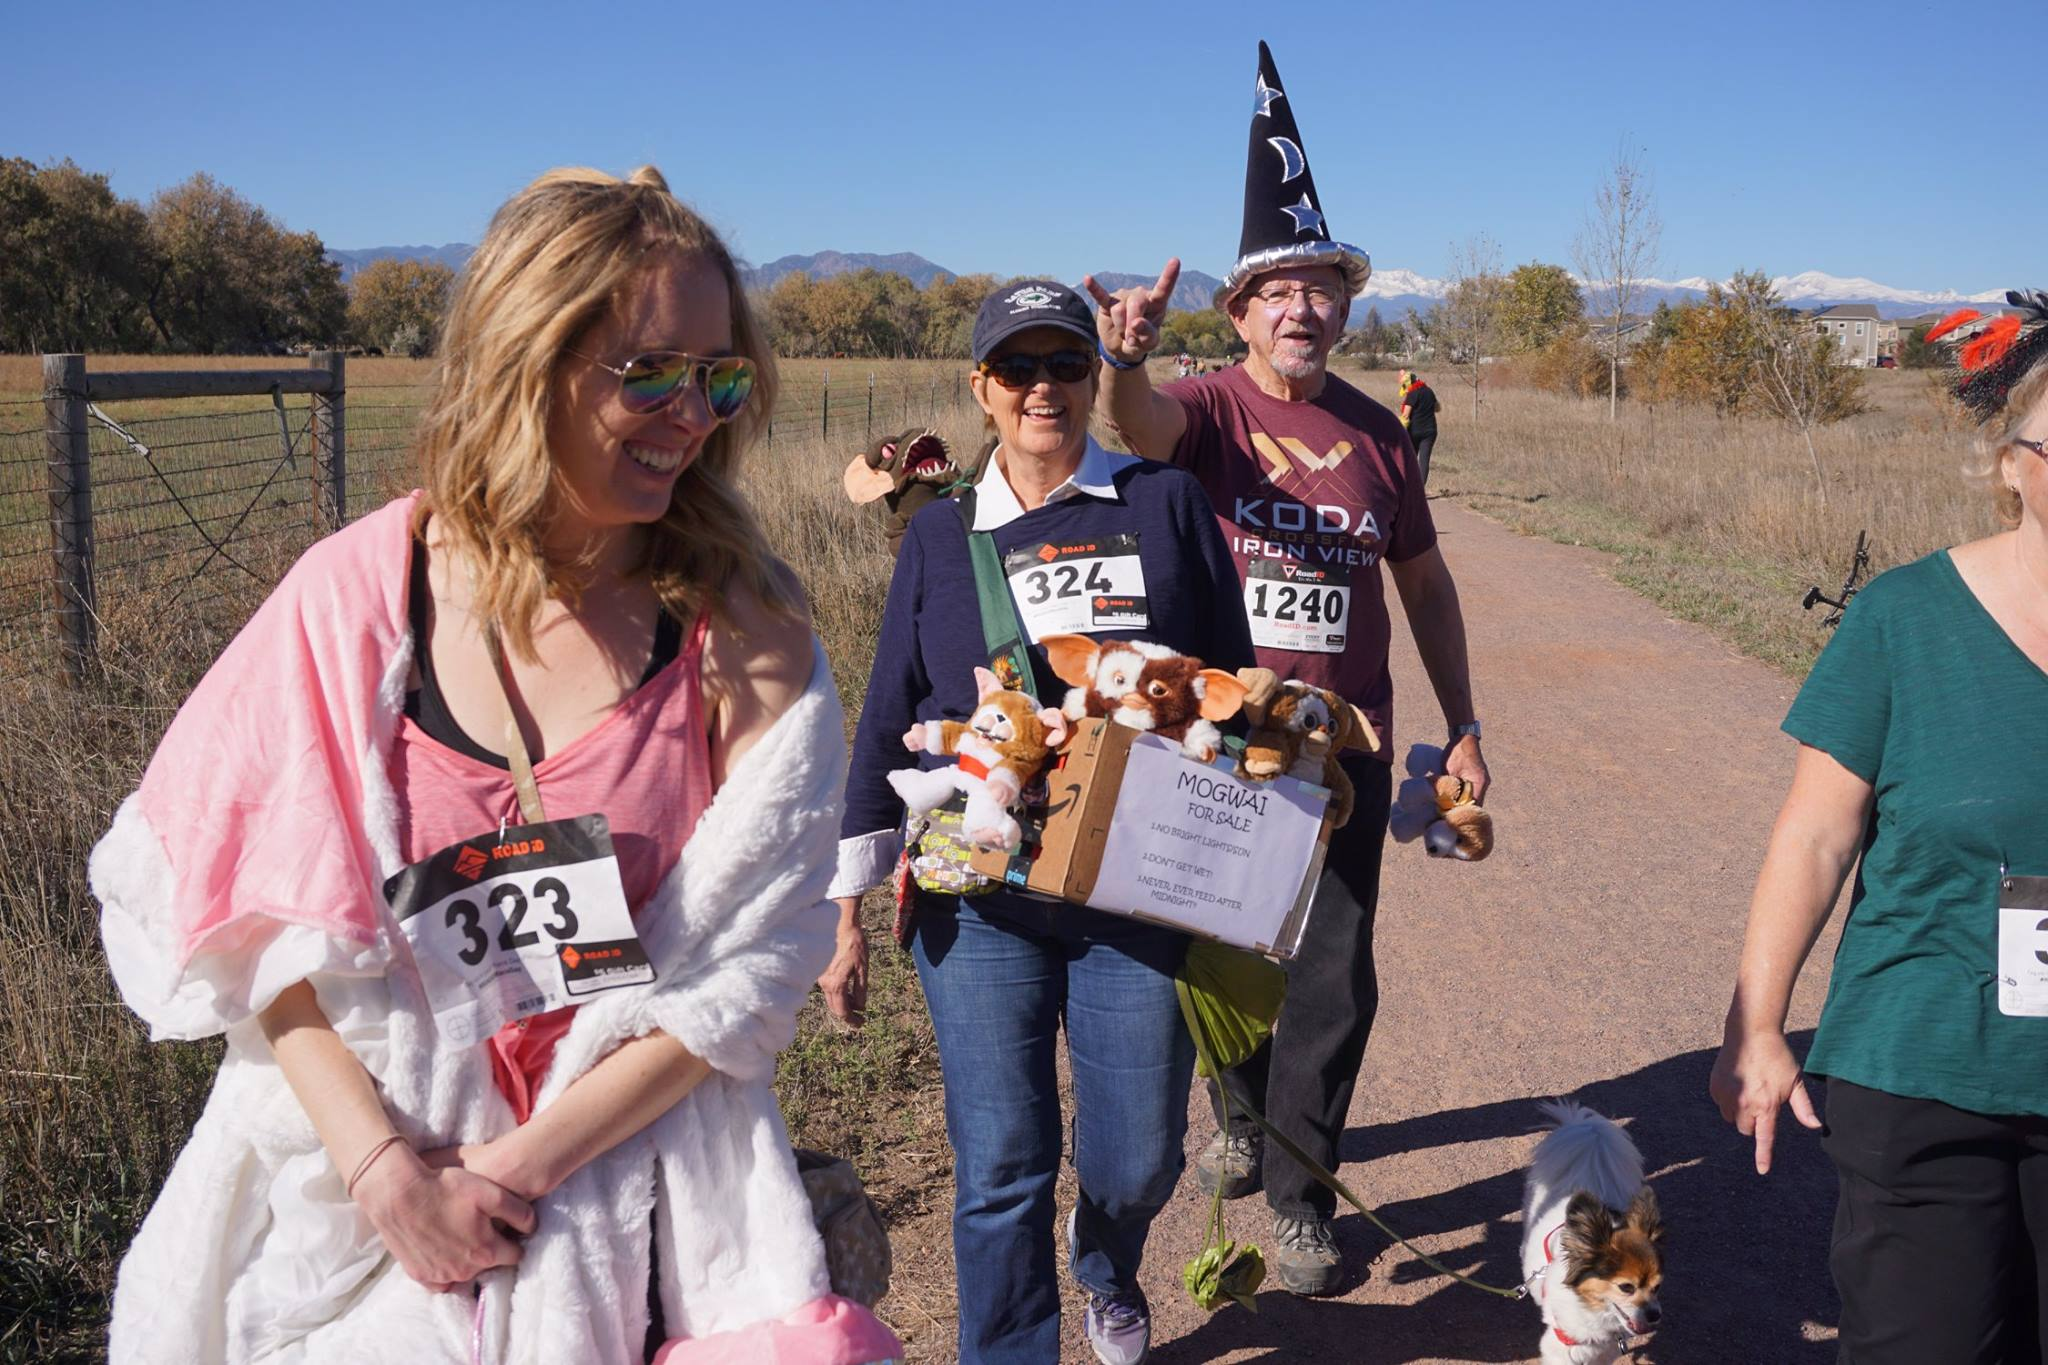 Such creative costumes and cute doggies!